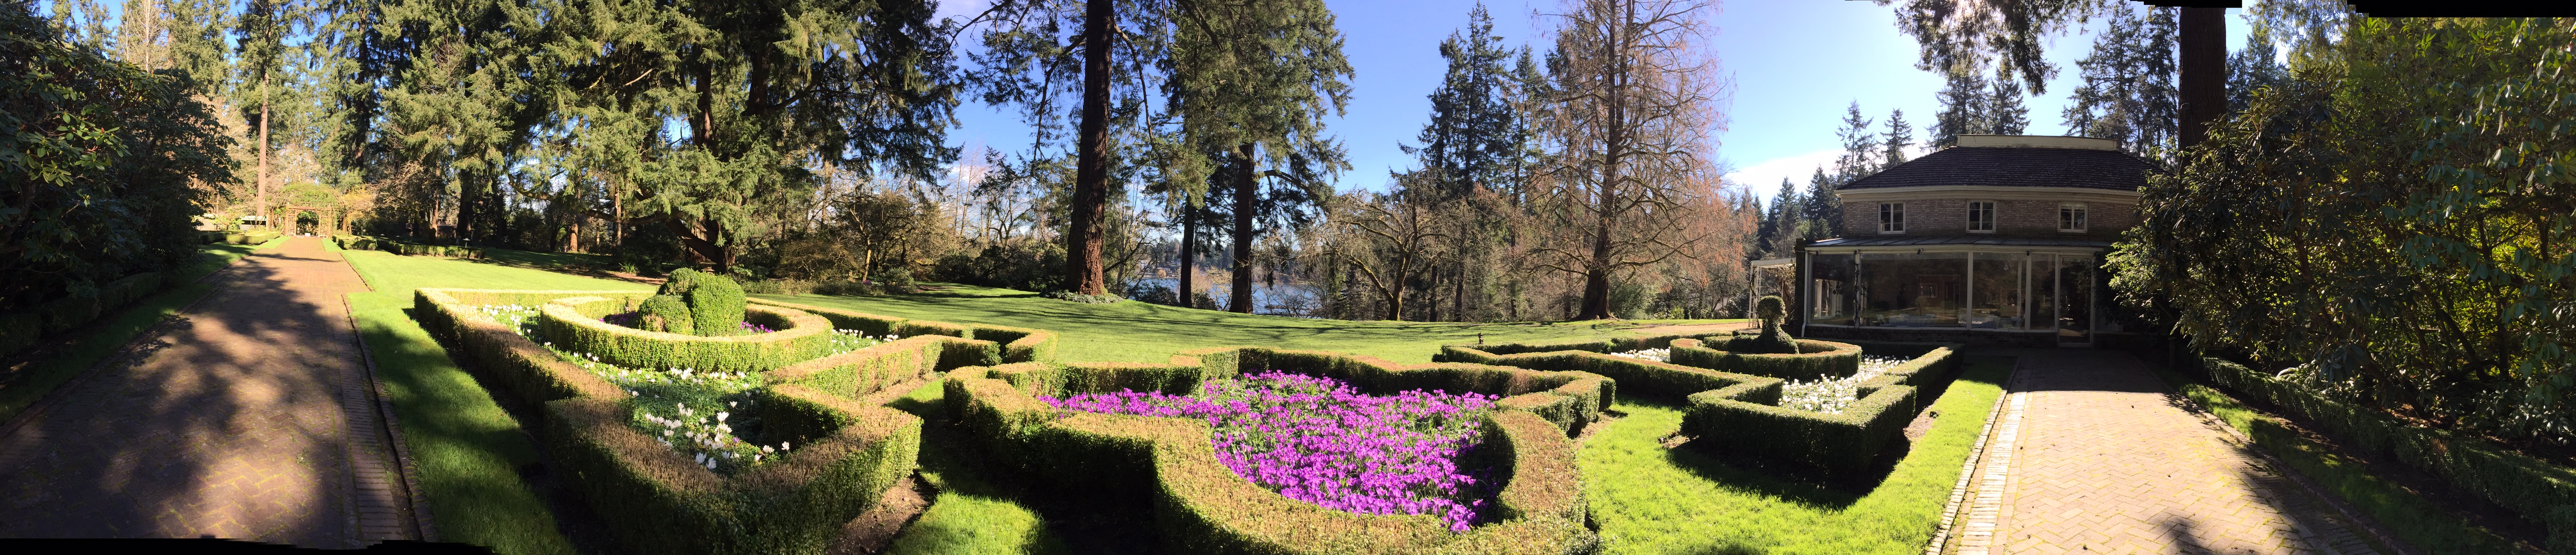 Lakewold Gardens Panorama